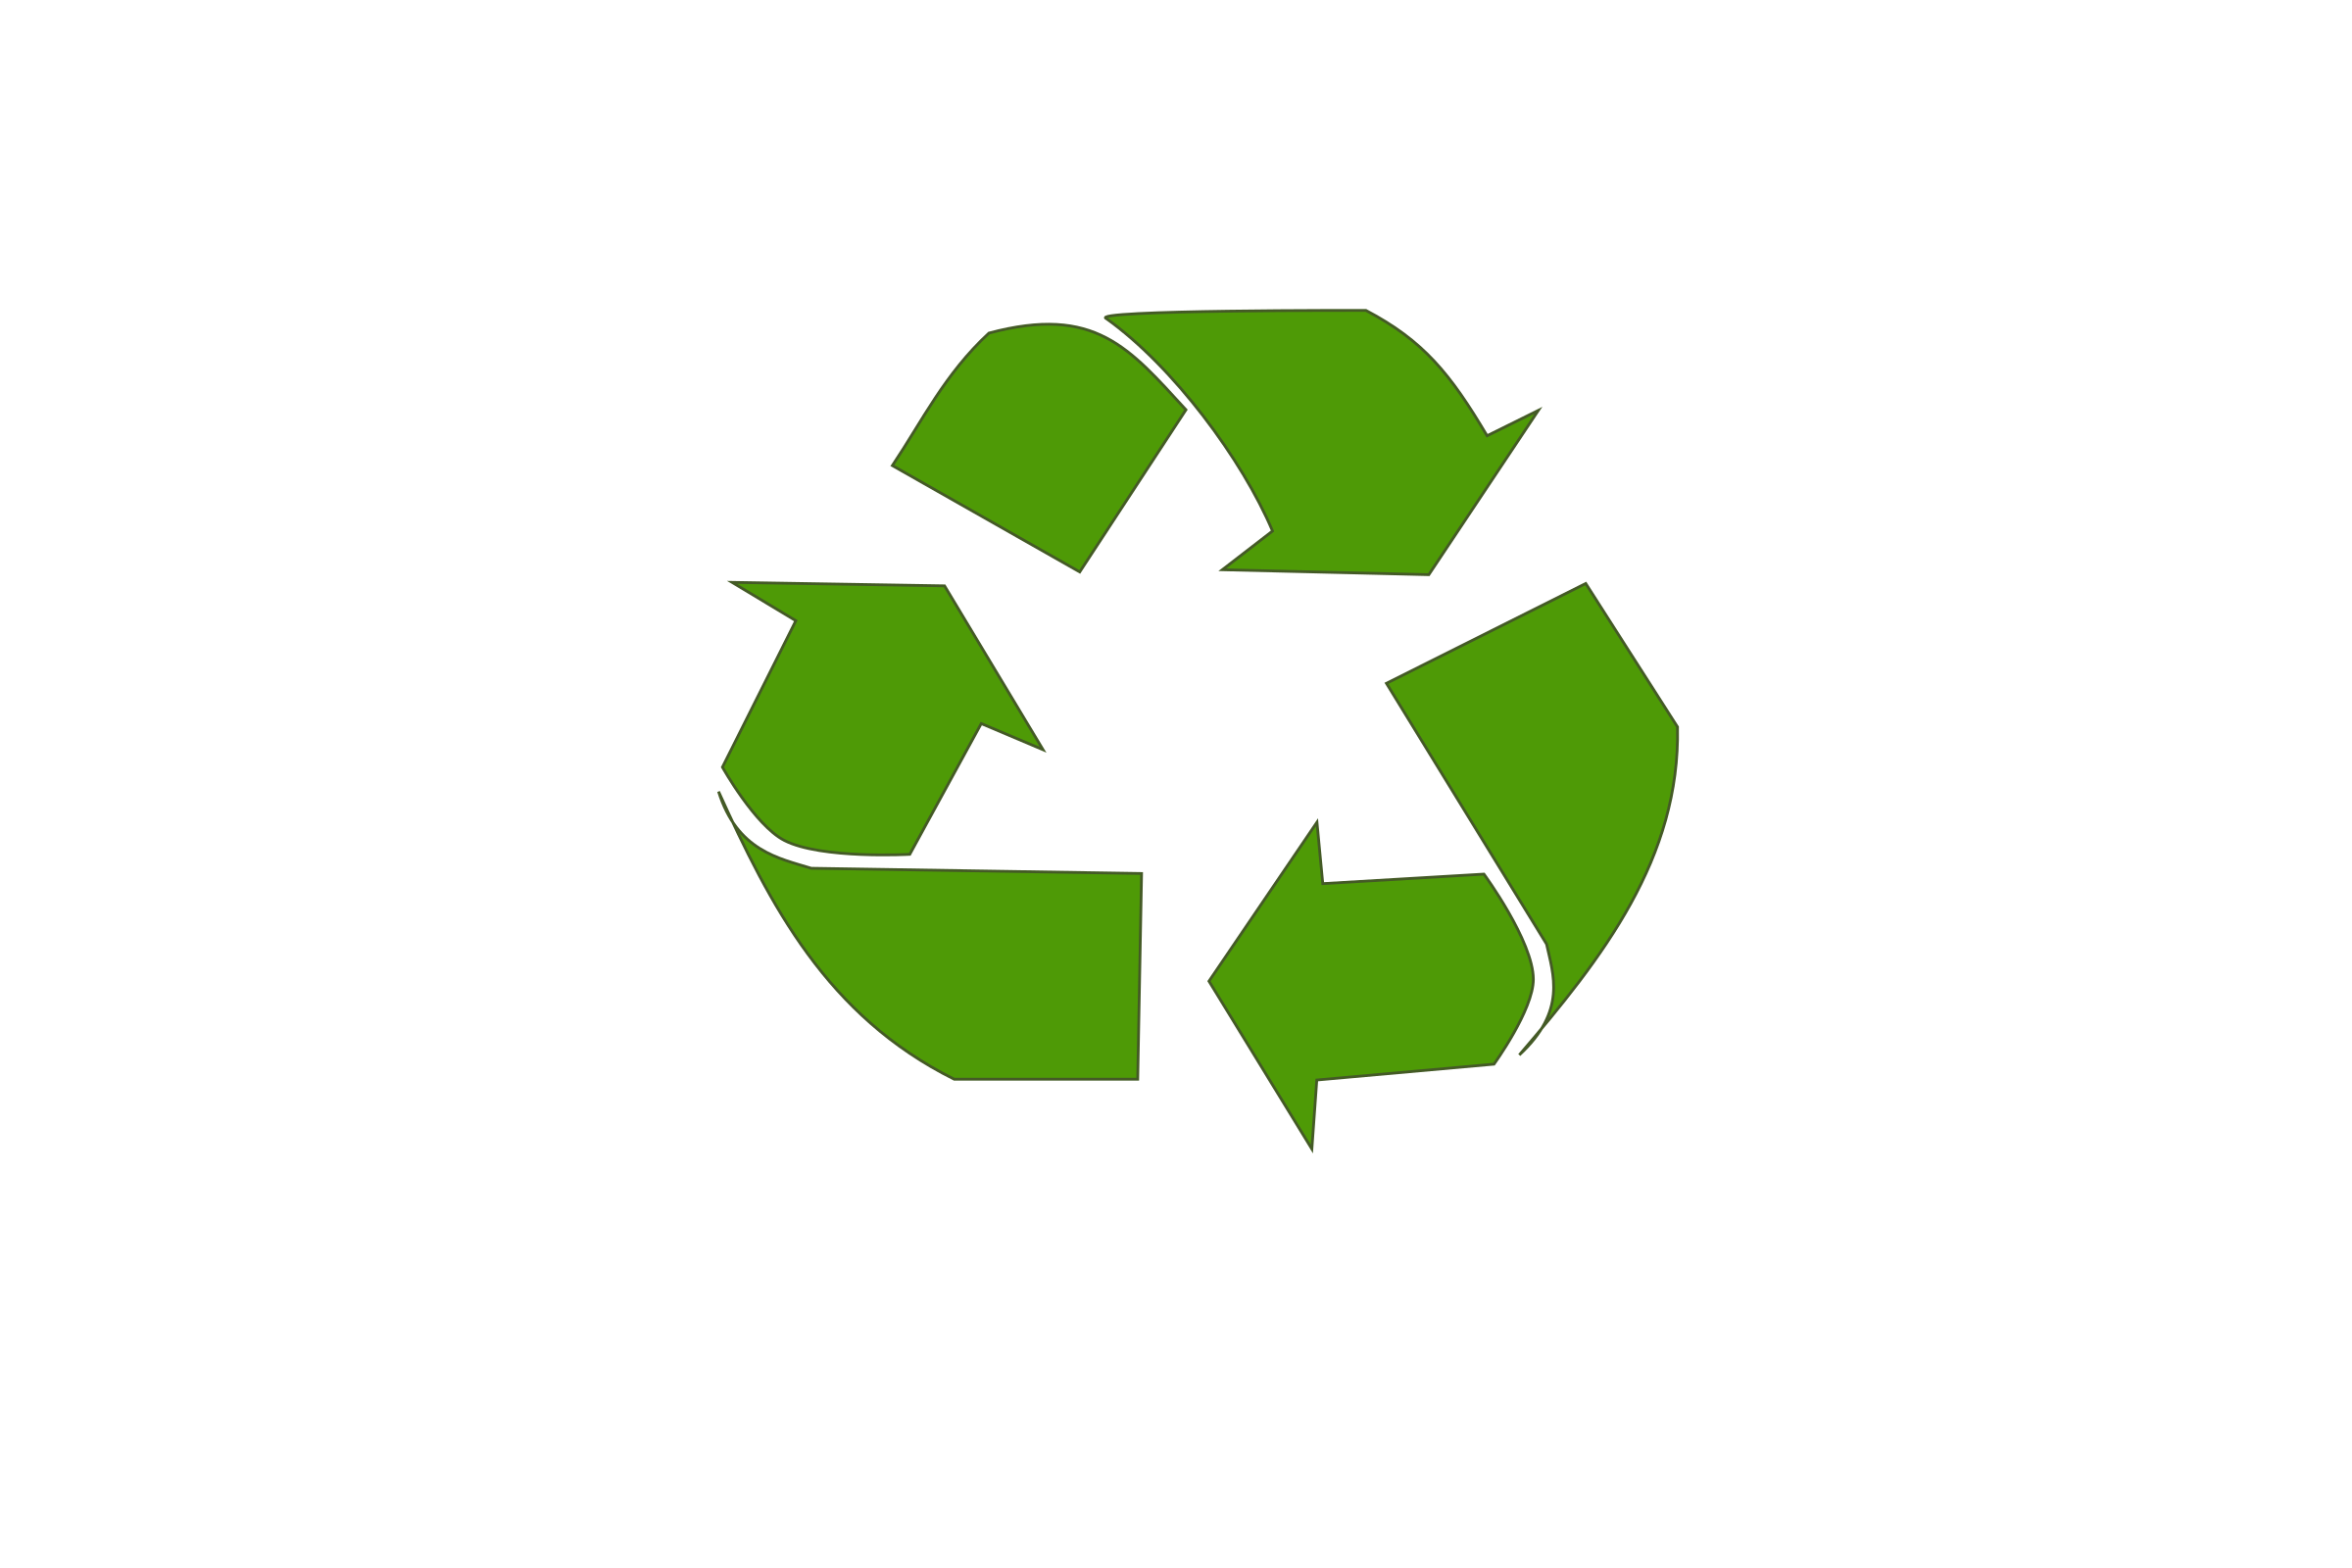 Reduce Re-use recycle by netalloy